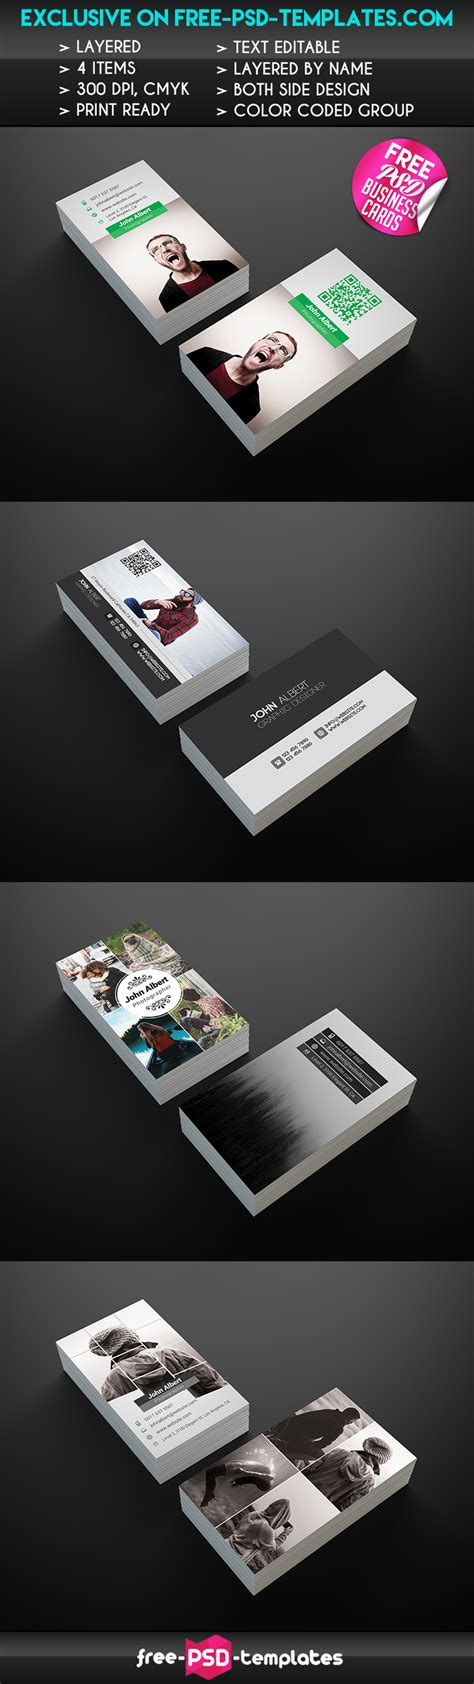 business card template pack free psd business card templates pack free psd templates